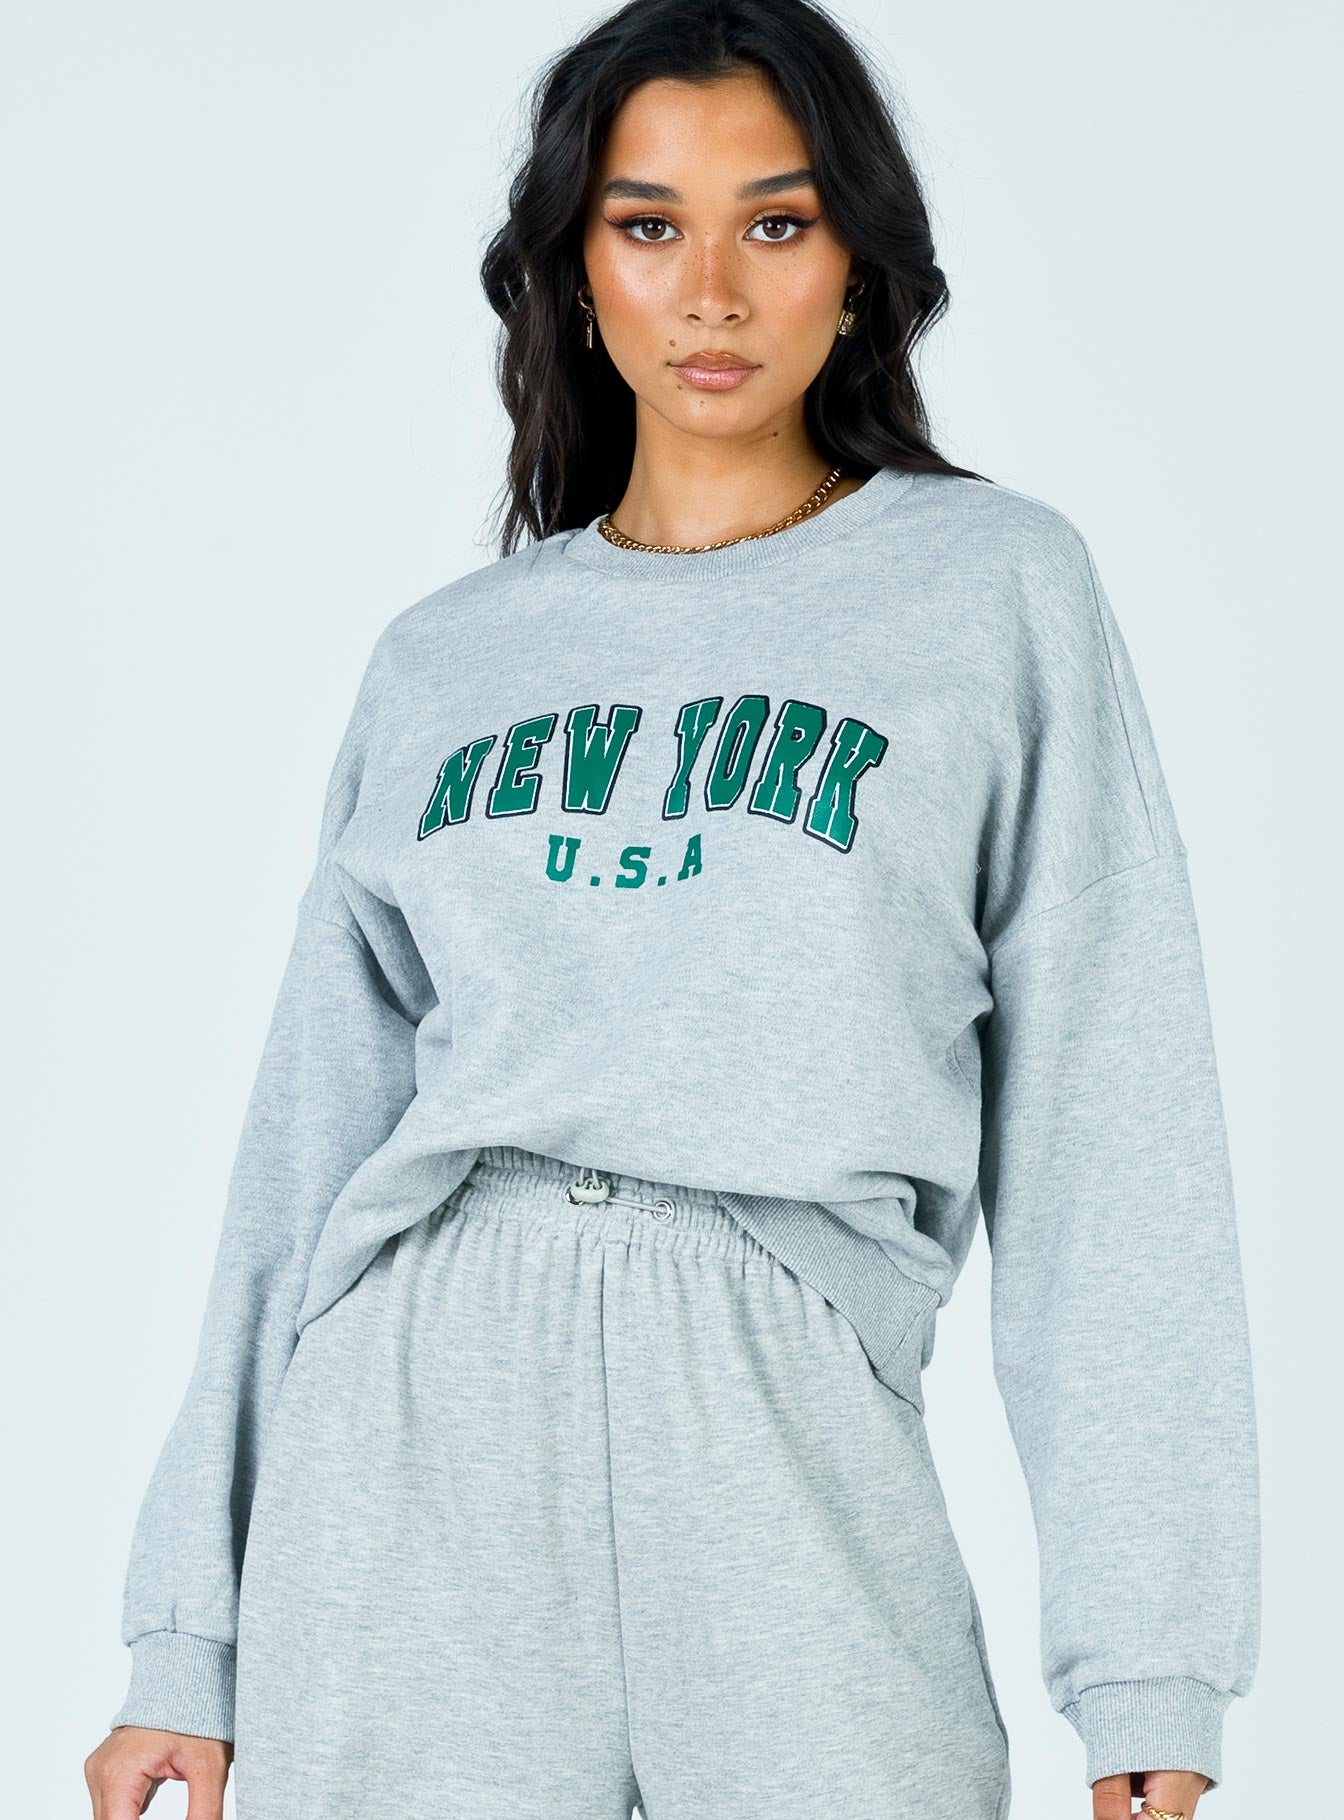 New York Sweater